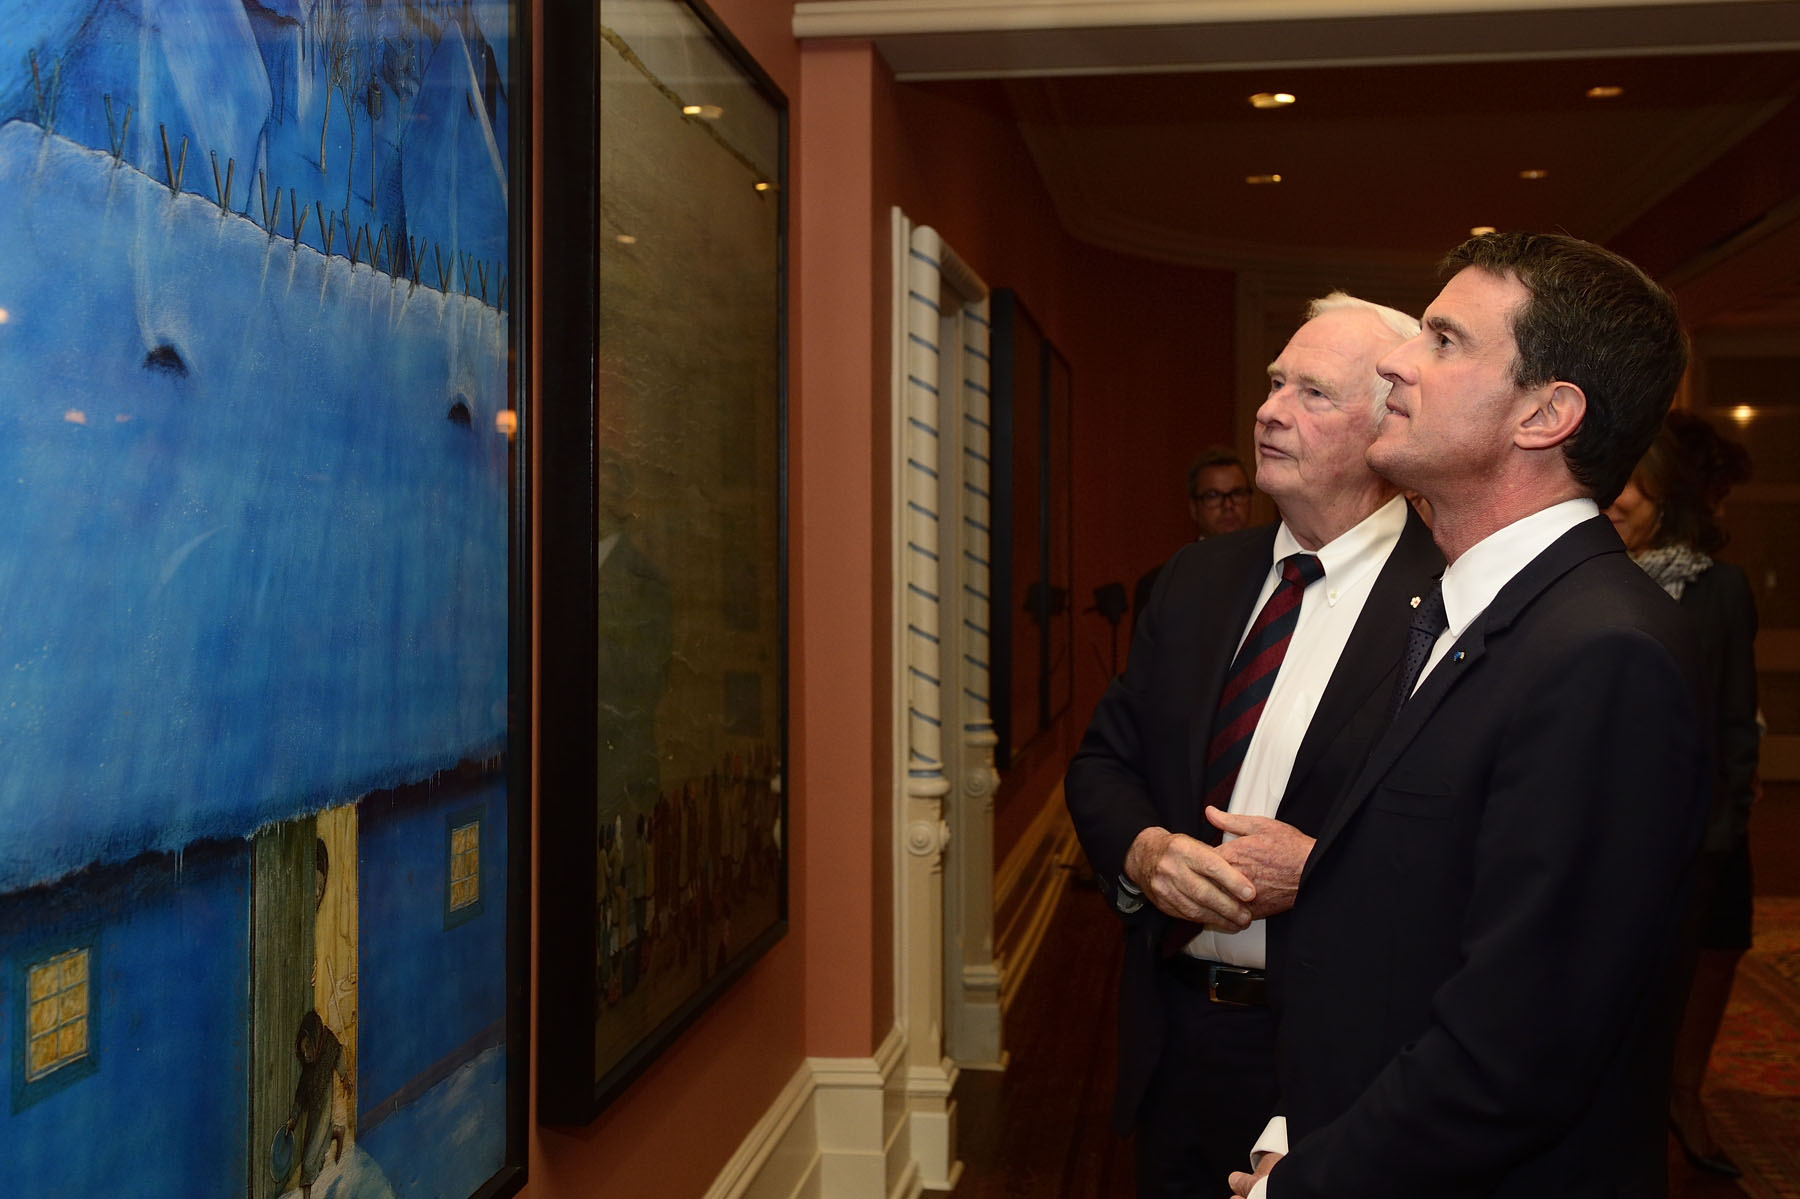 The Governor General and the Prime Minister appreciated Canadian artworks in the Reception Room.